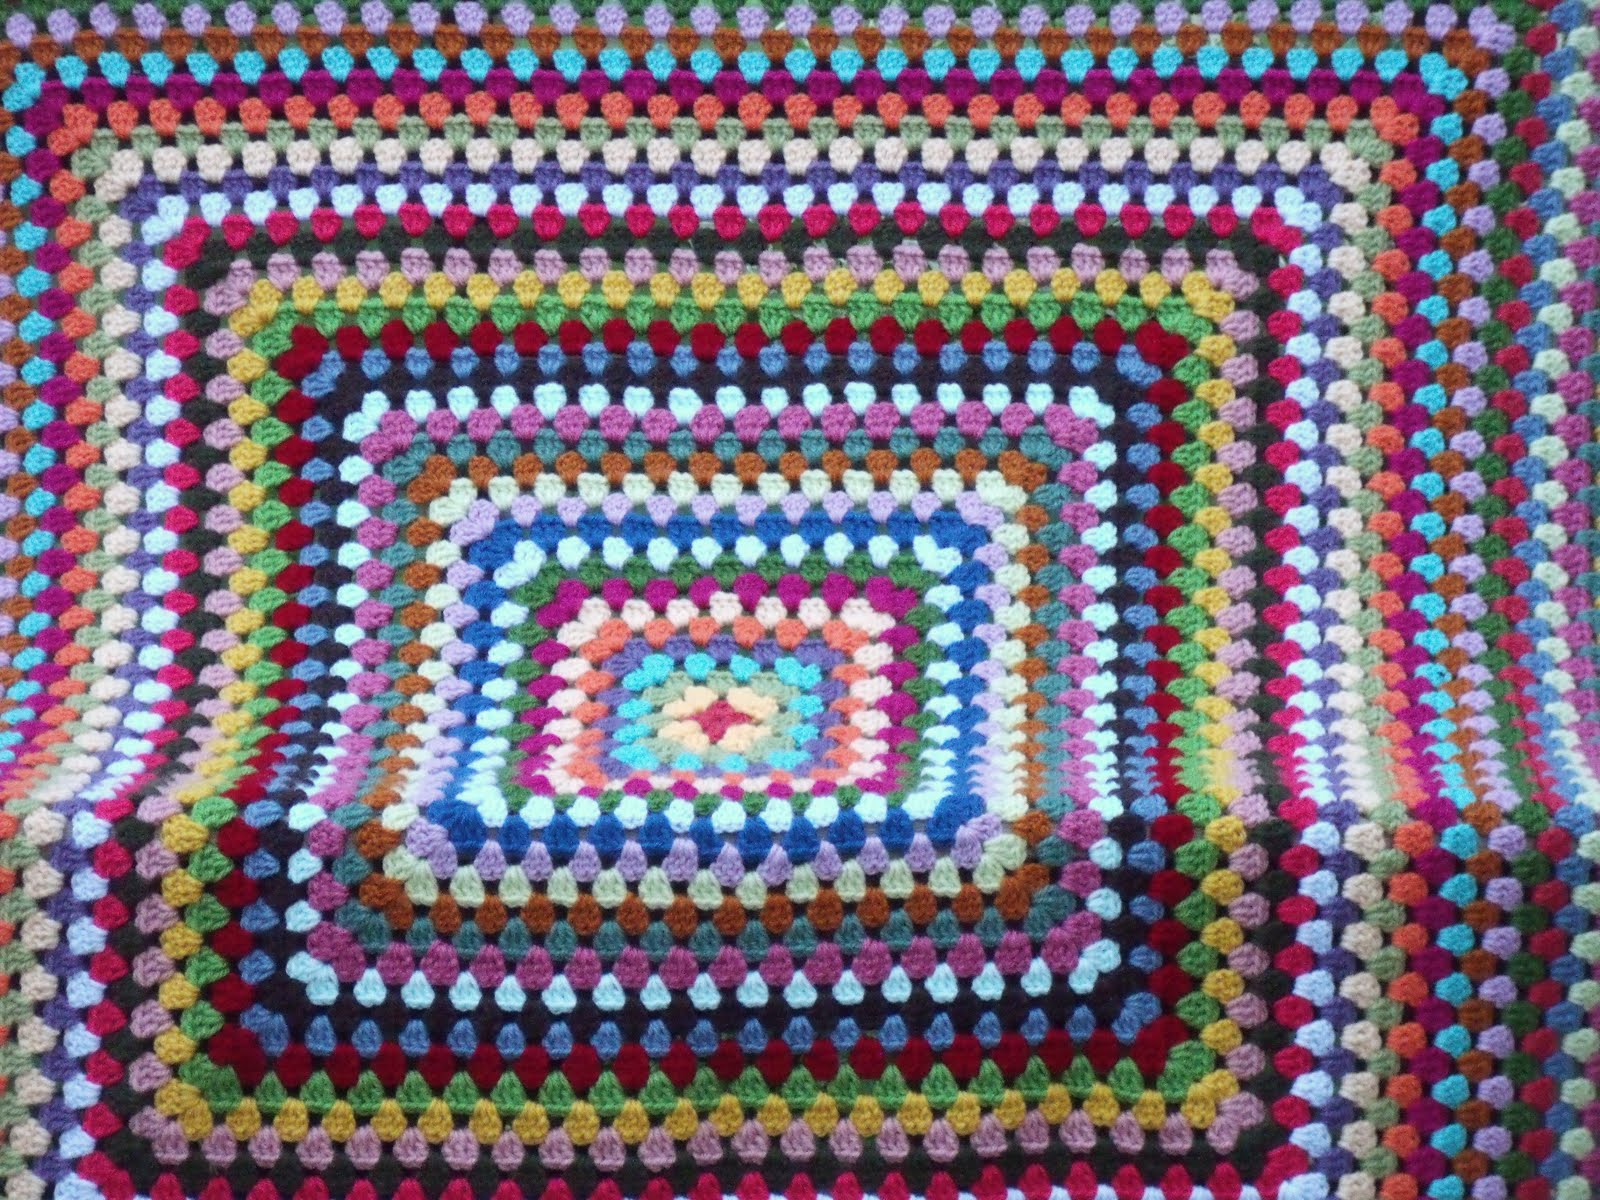 Crochet Easy Granny Square Patterns : Easy Crochet Pattern Granny Square Afghan Tutorial LONG ...